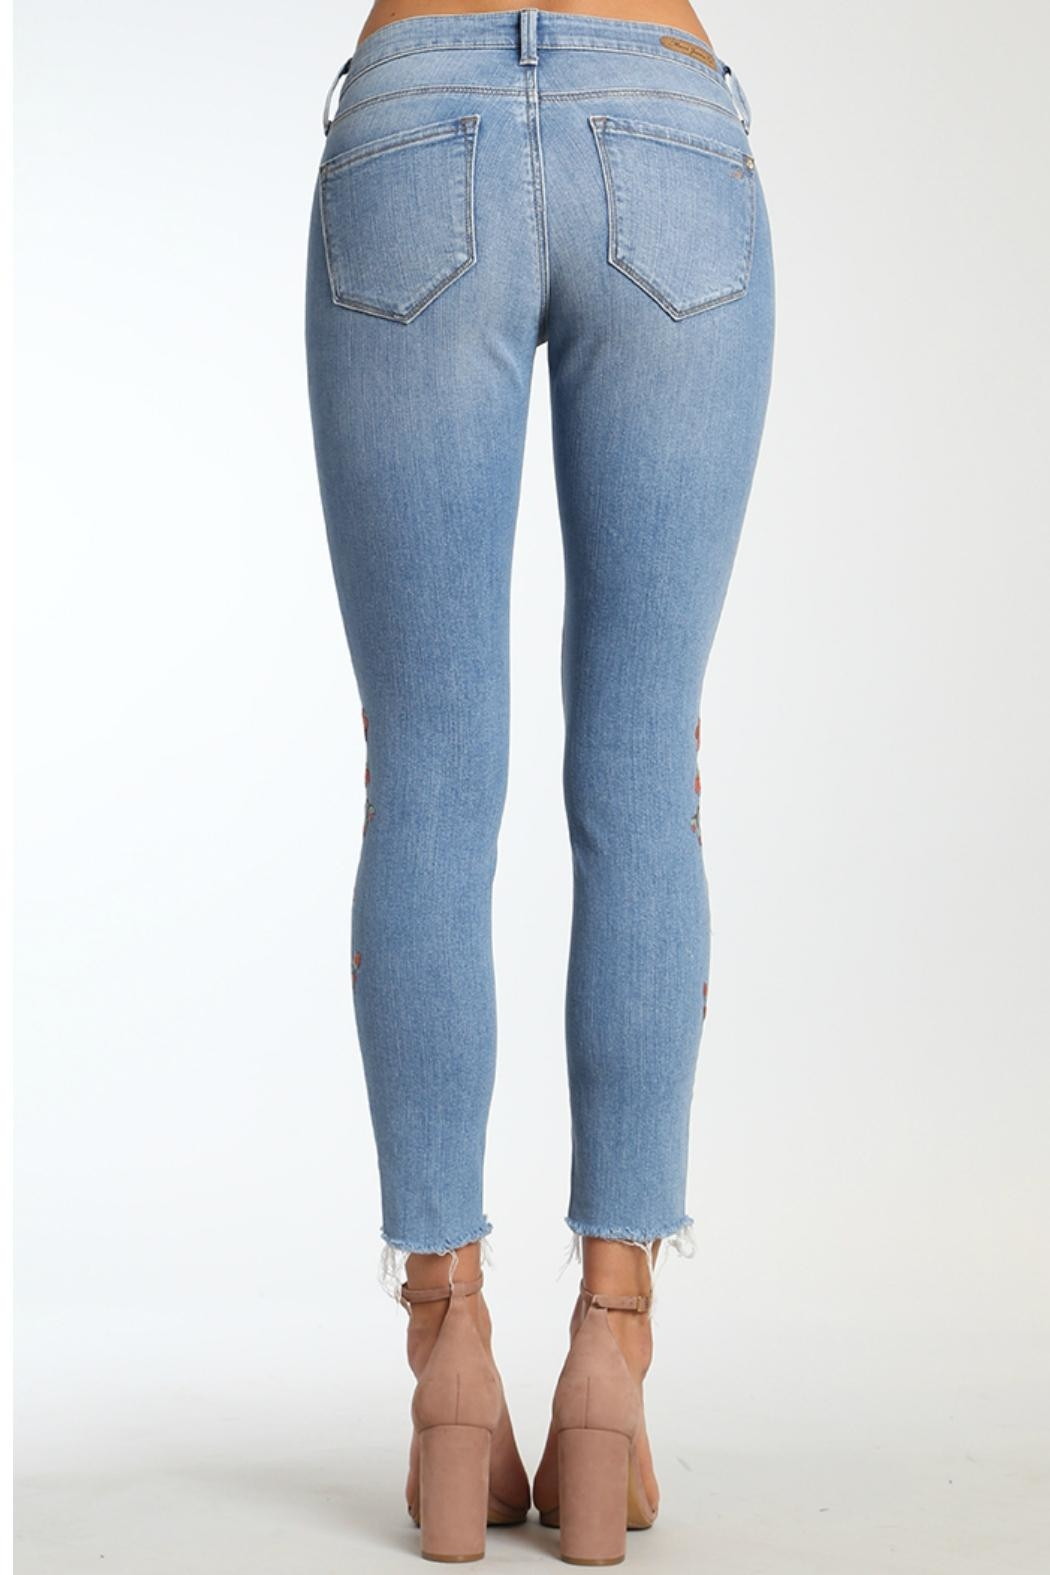 Mavi Jeans Light Embroidered Jeans from Canada by Blue Sky ...